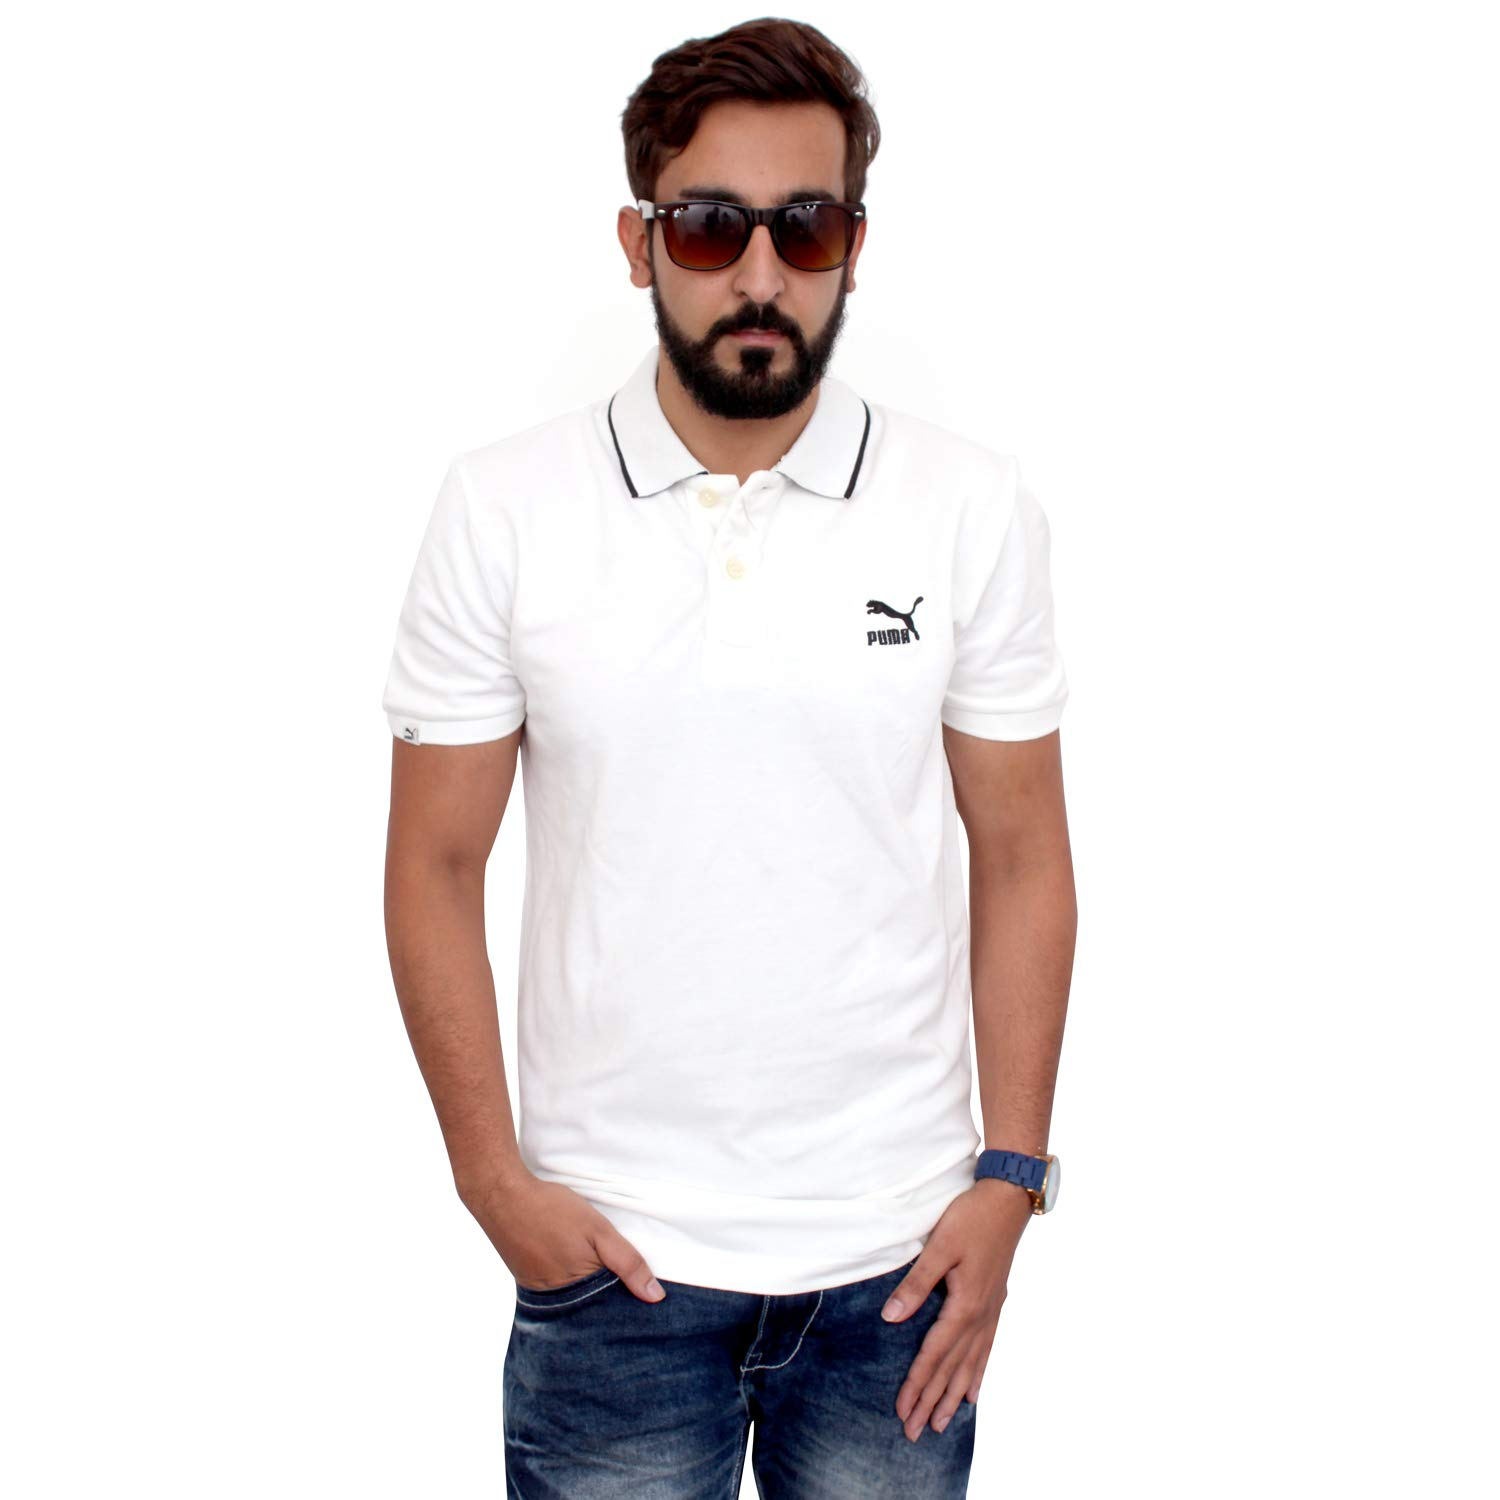 Puma Men Solid White T-Shirt: Amazon.es: Ropa y accesorios